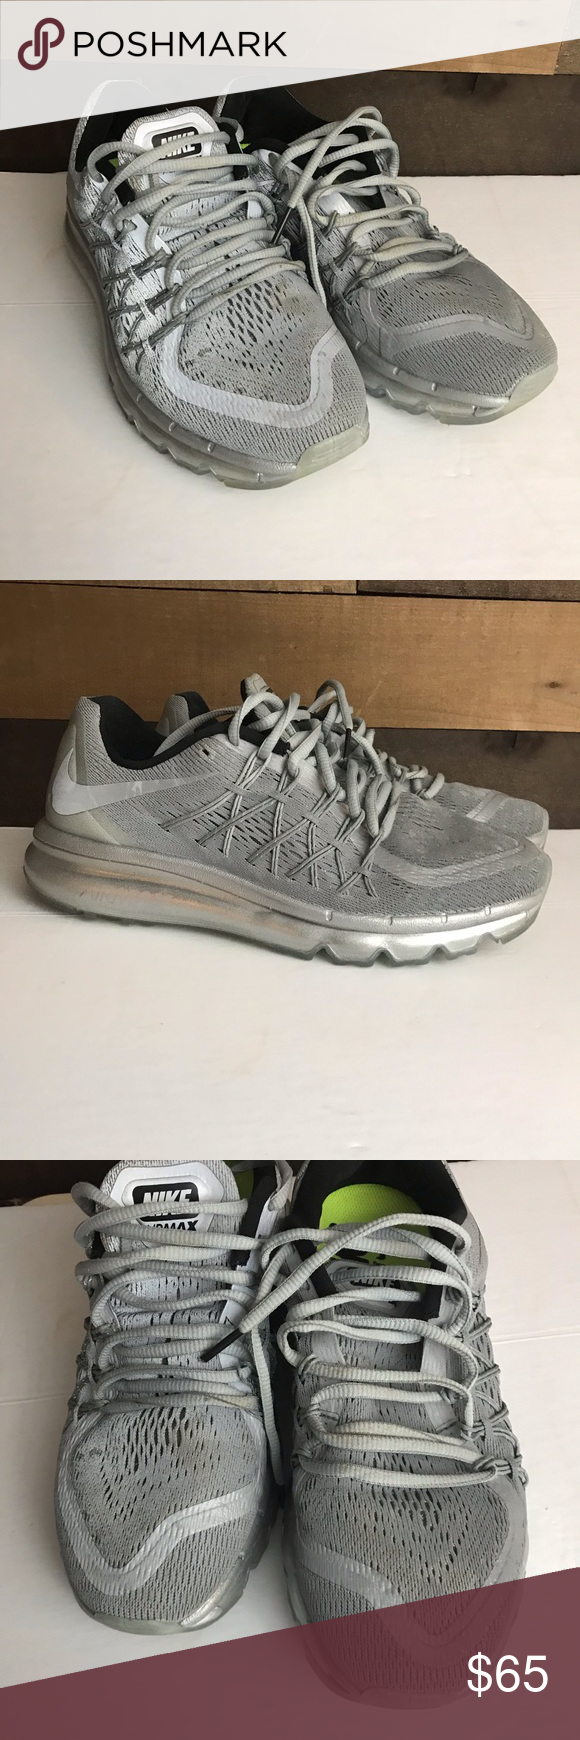 timeless design b5e62 b2058 Nike Air Max 2015 3m reflective women s shoes 9 Nike Air Max 2015  Reflective Silver 3M 709014 001 Women s 9 Running Shoes. Condition is  Pre-owned.